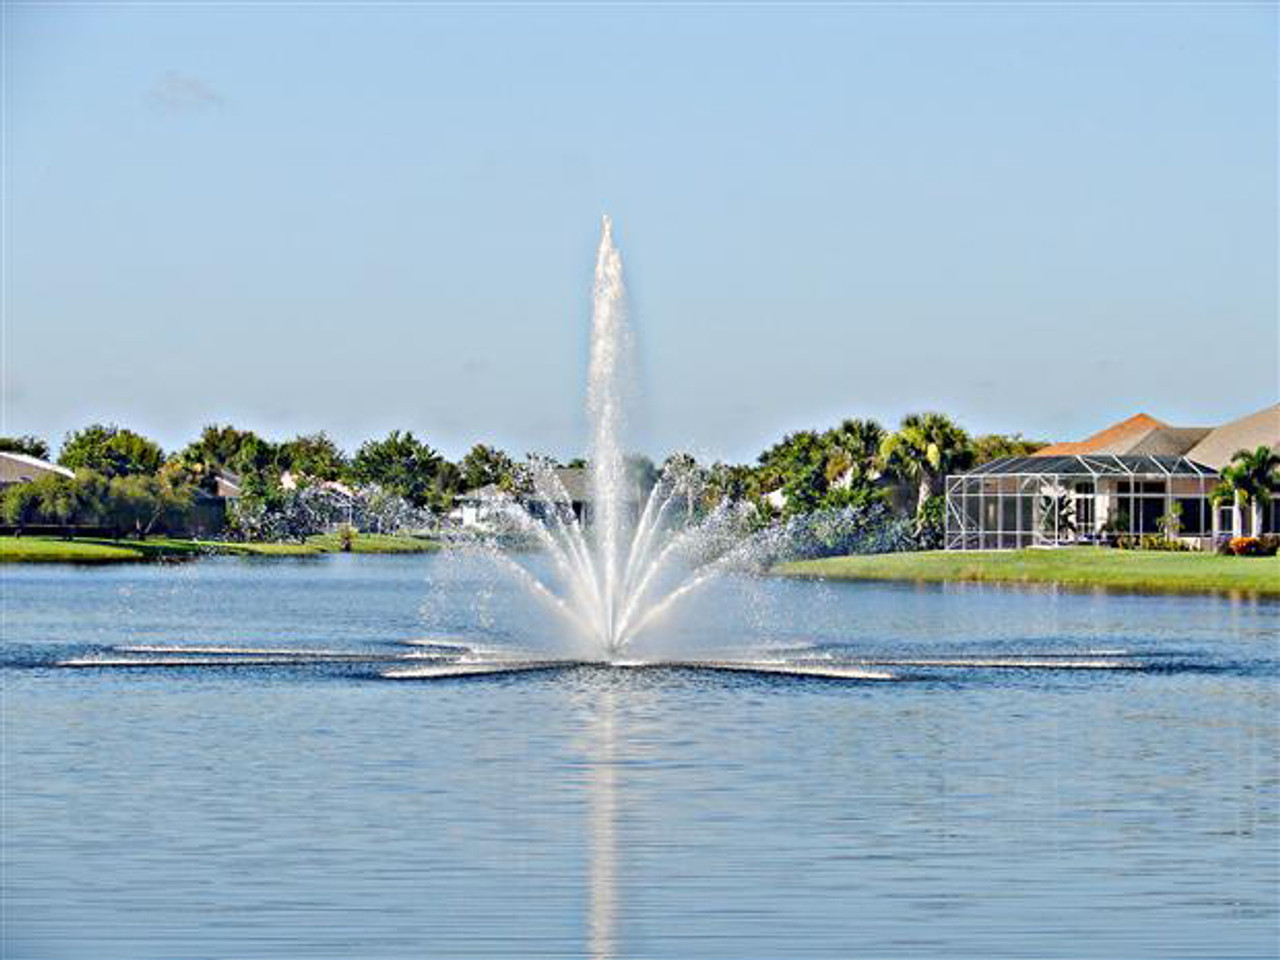 Lake Fountains